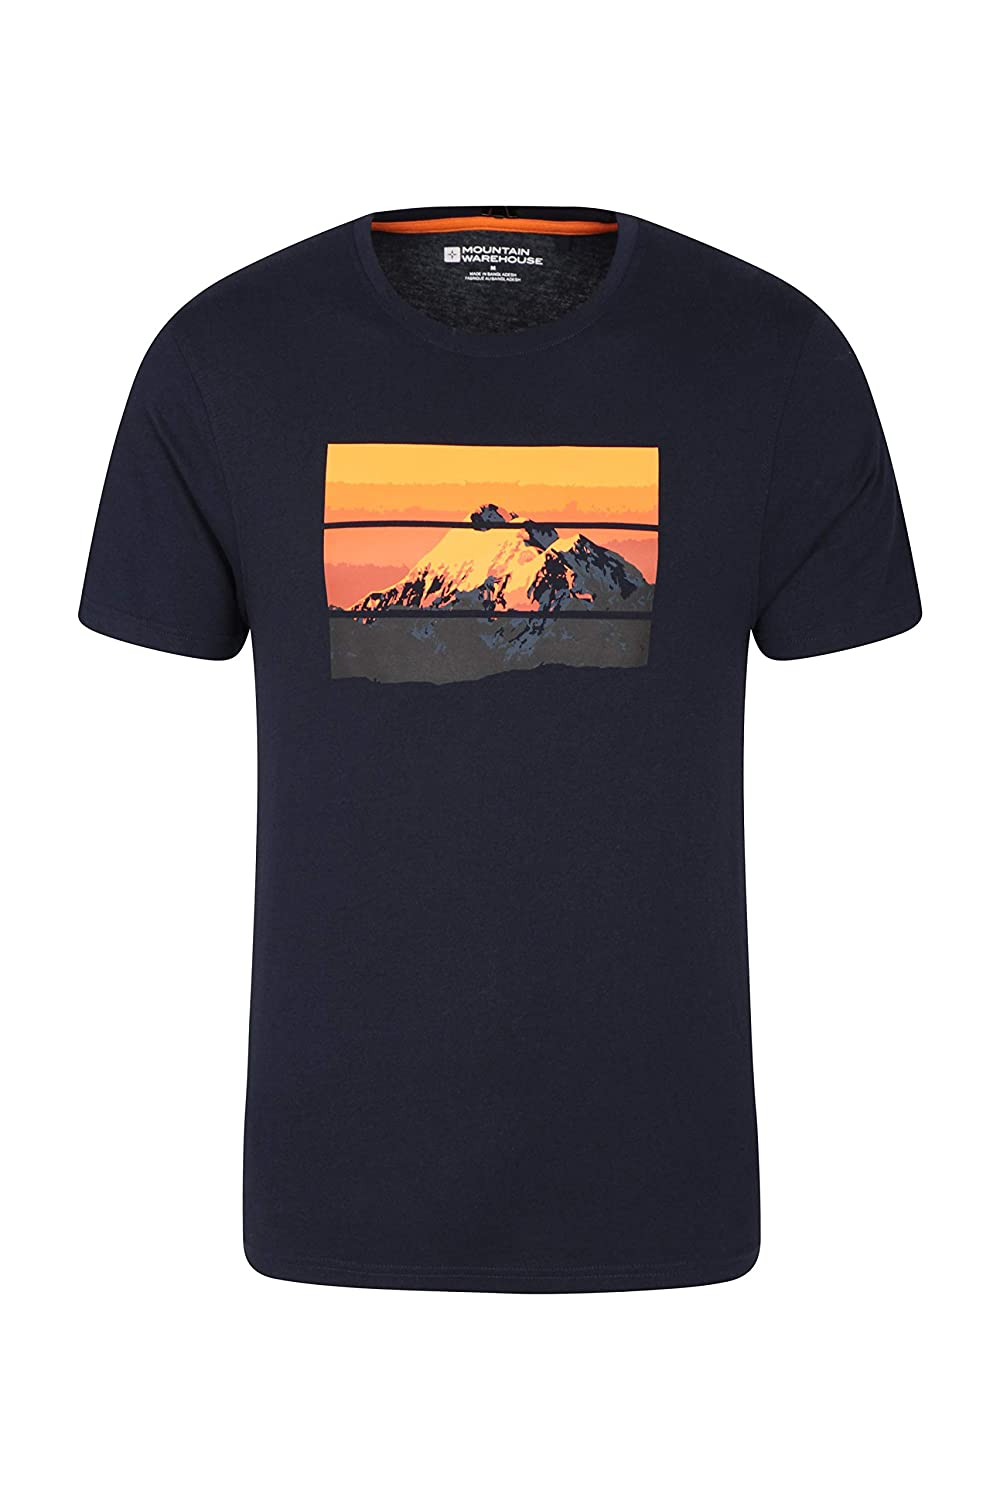 Quality Print Top -for Spring Travelling /& Hiking Lightweight Tee Shirt Mountain Warehouse Mountain Limits Mens Tee UV Protection Summer T-Shirt Easy Care